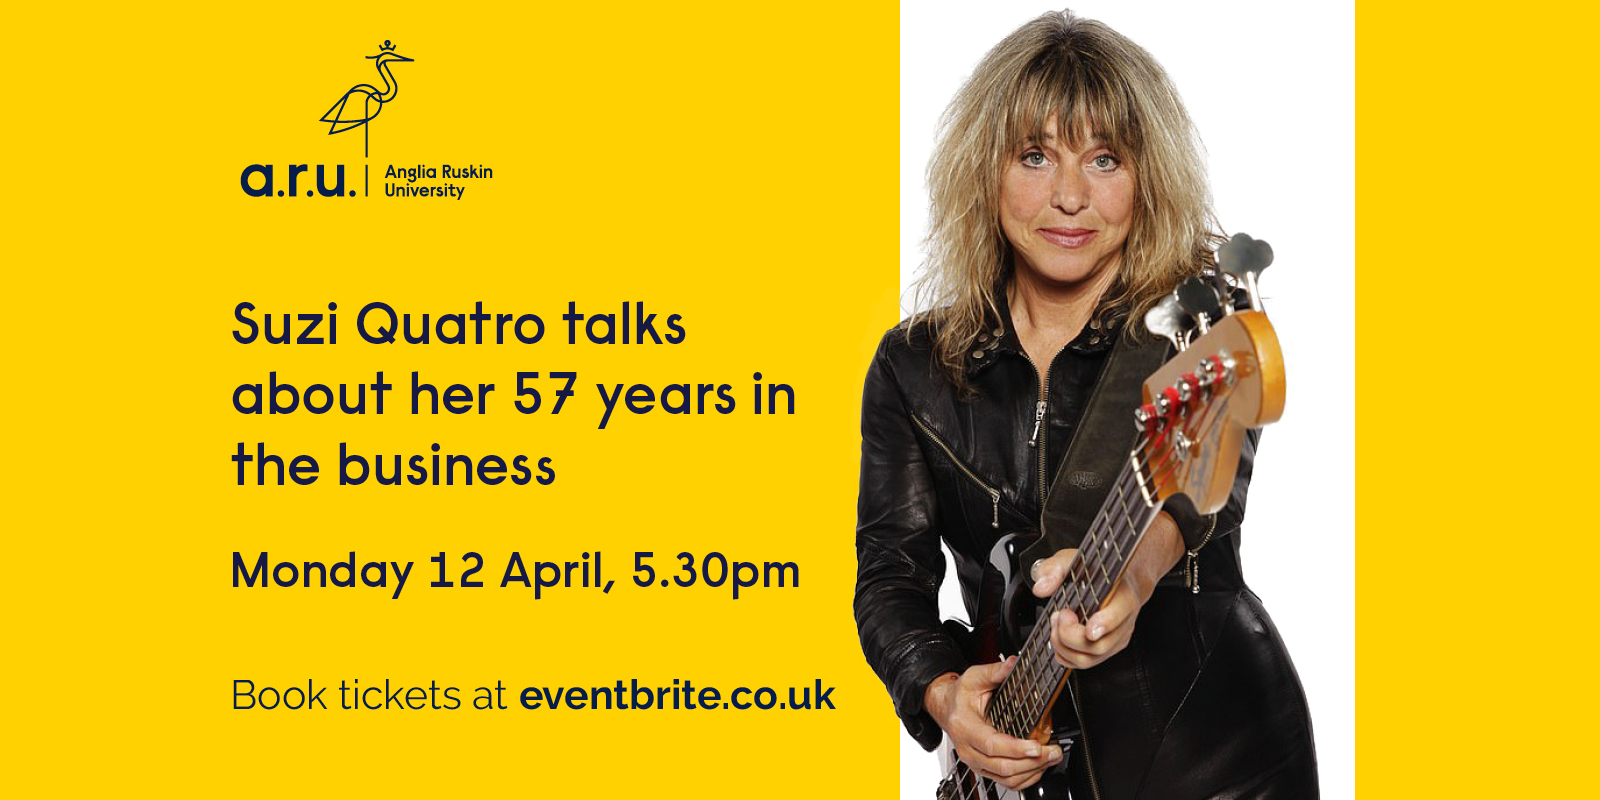 Event artwork featuring a headshot photo of Suzi Quatro.